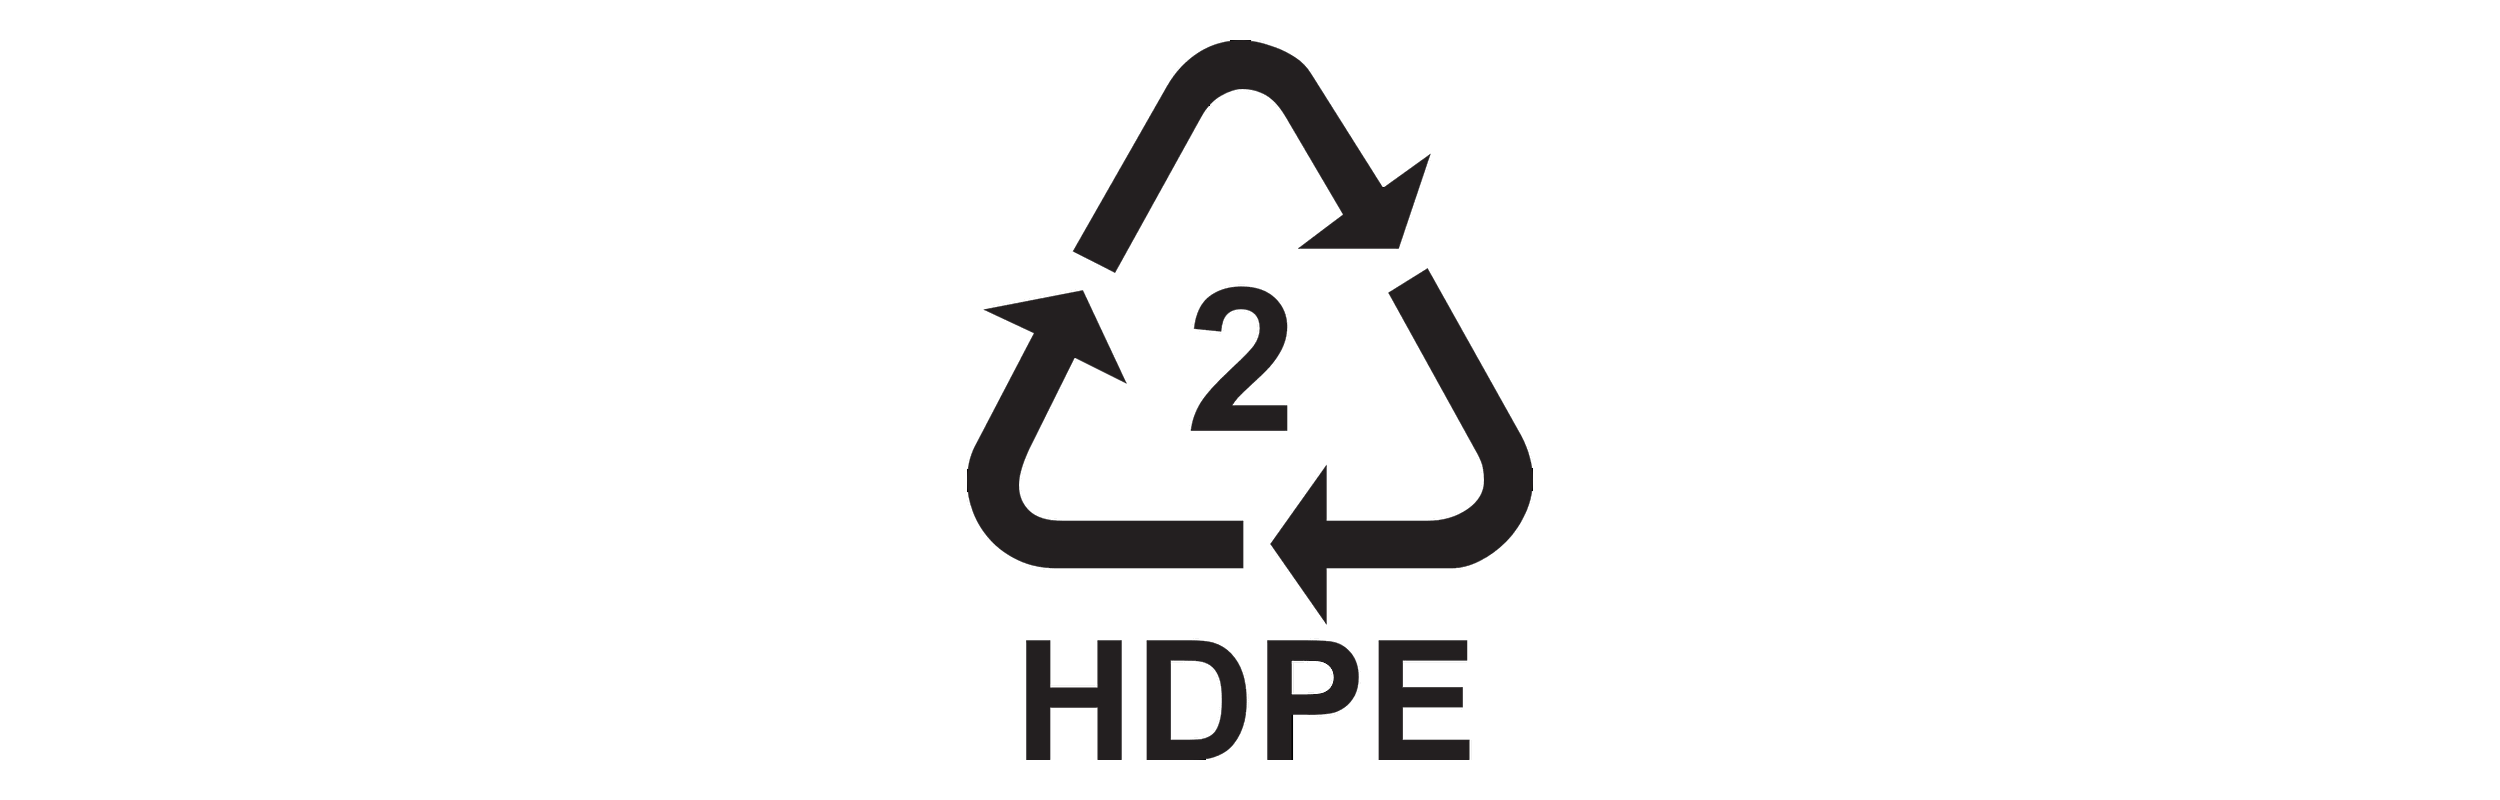 HDPE recycling code.